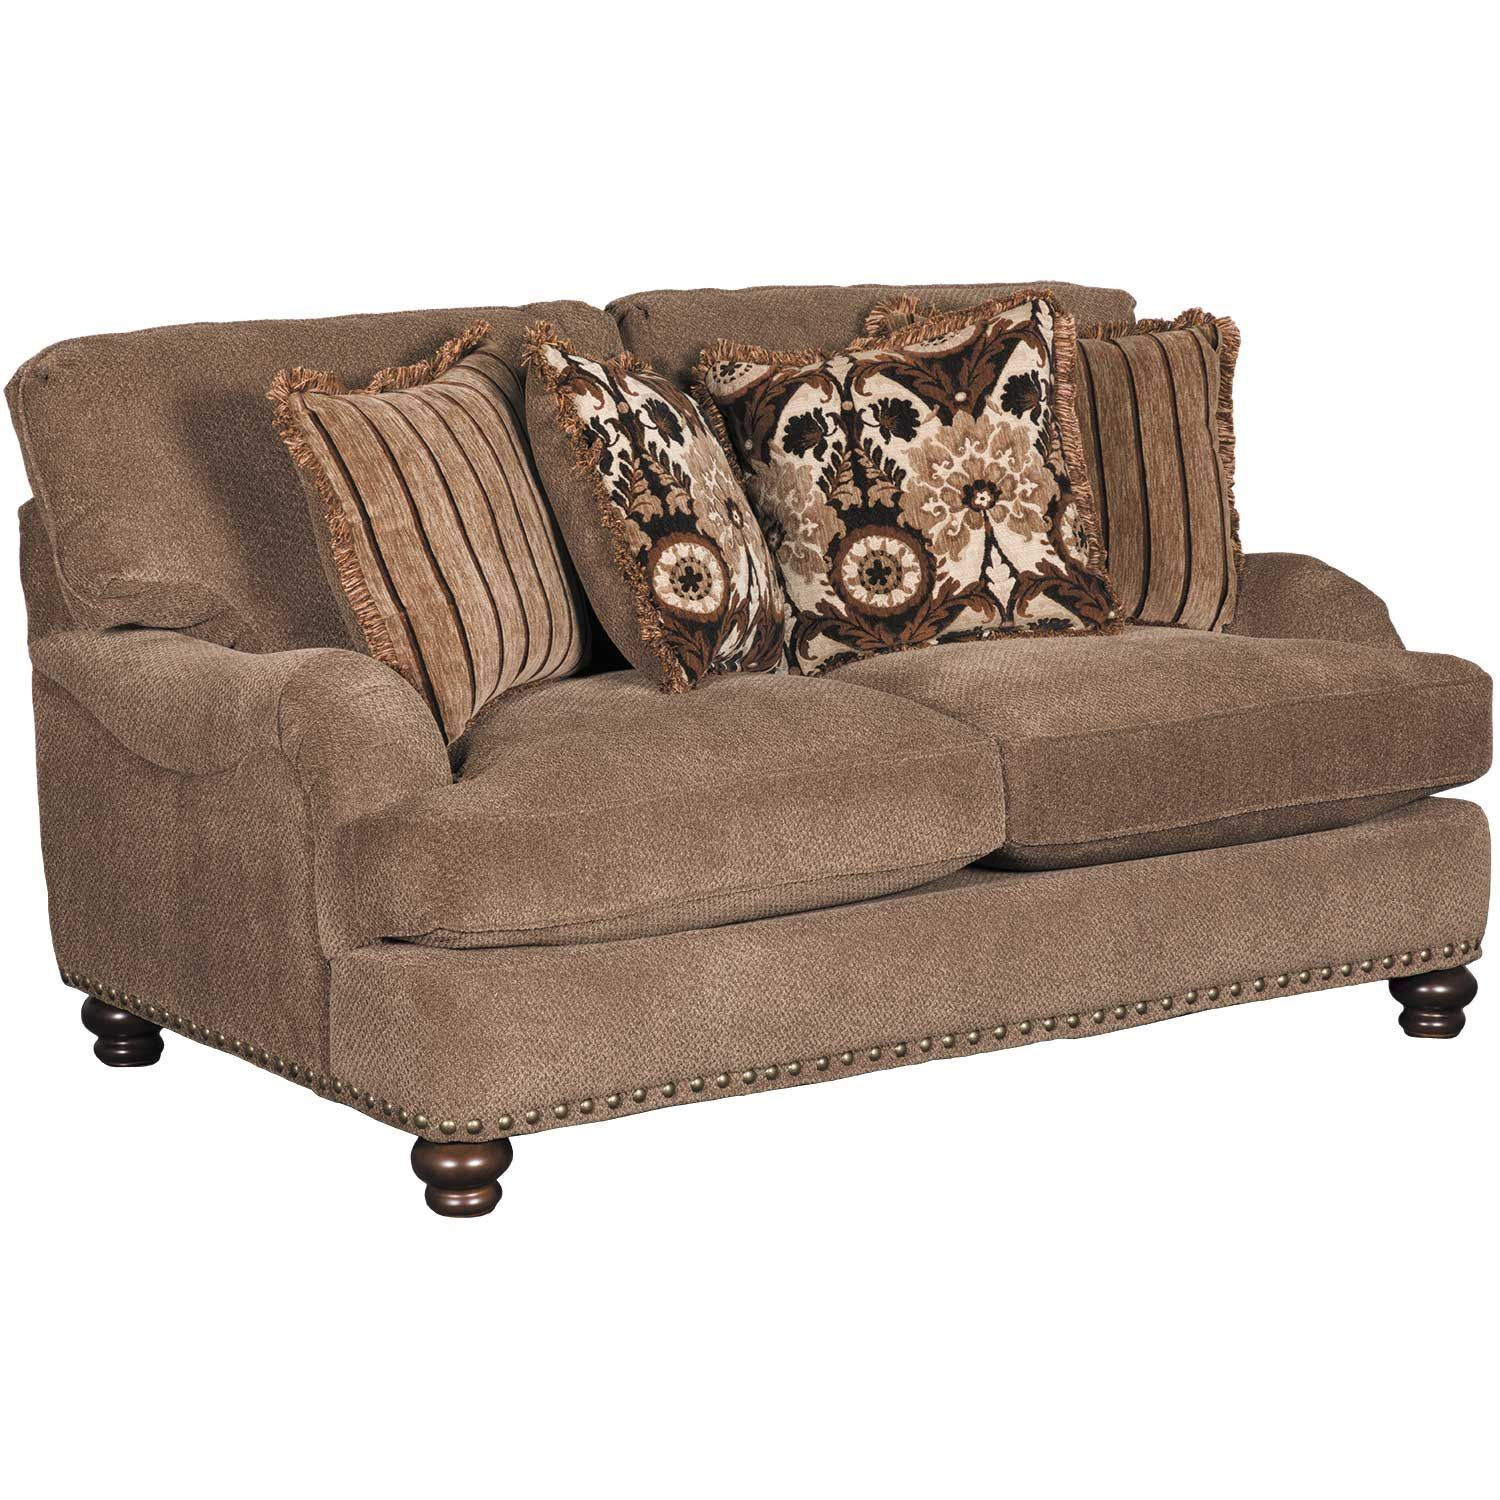 Prodigy Mink Loveseat 8012 Corinthian Furniture Afw Com